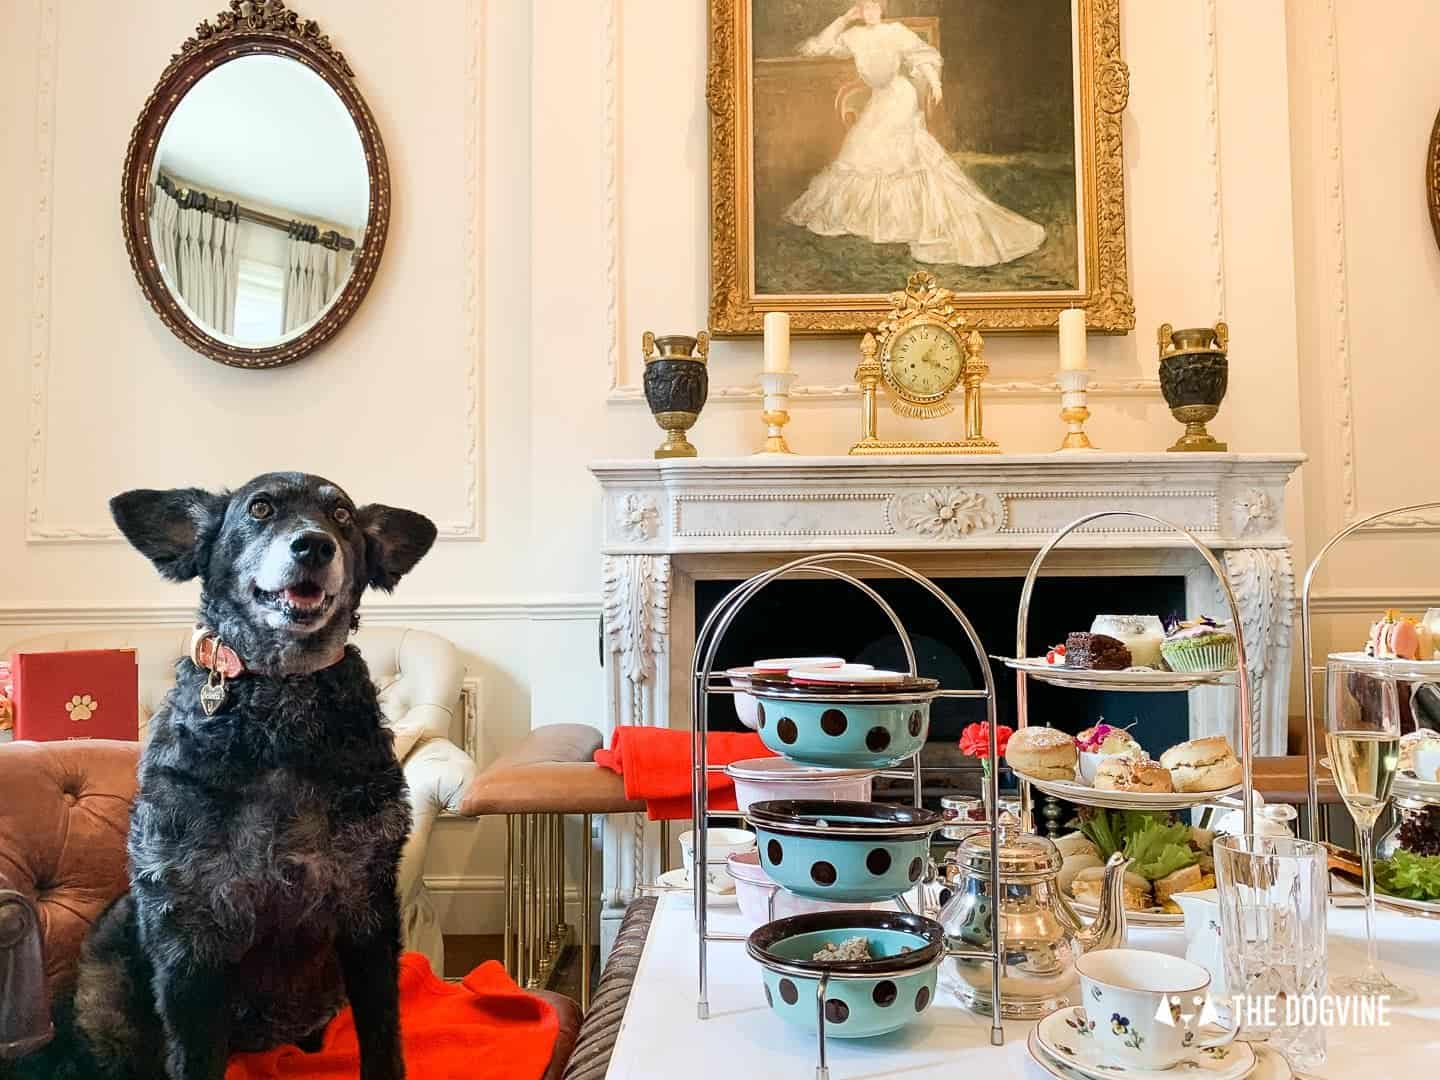 Dog Afternoon Tea At The Egerton House Hotel, Make Your Dog's Day!